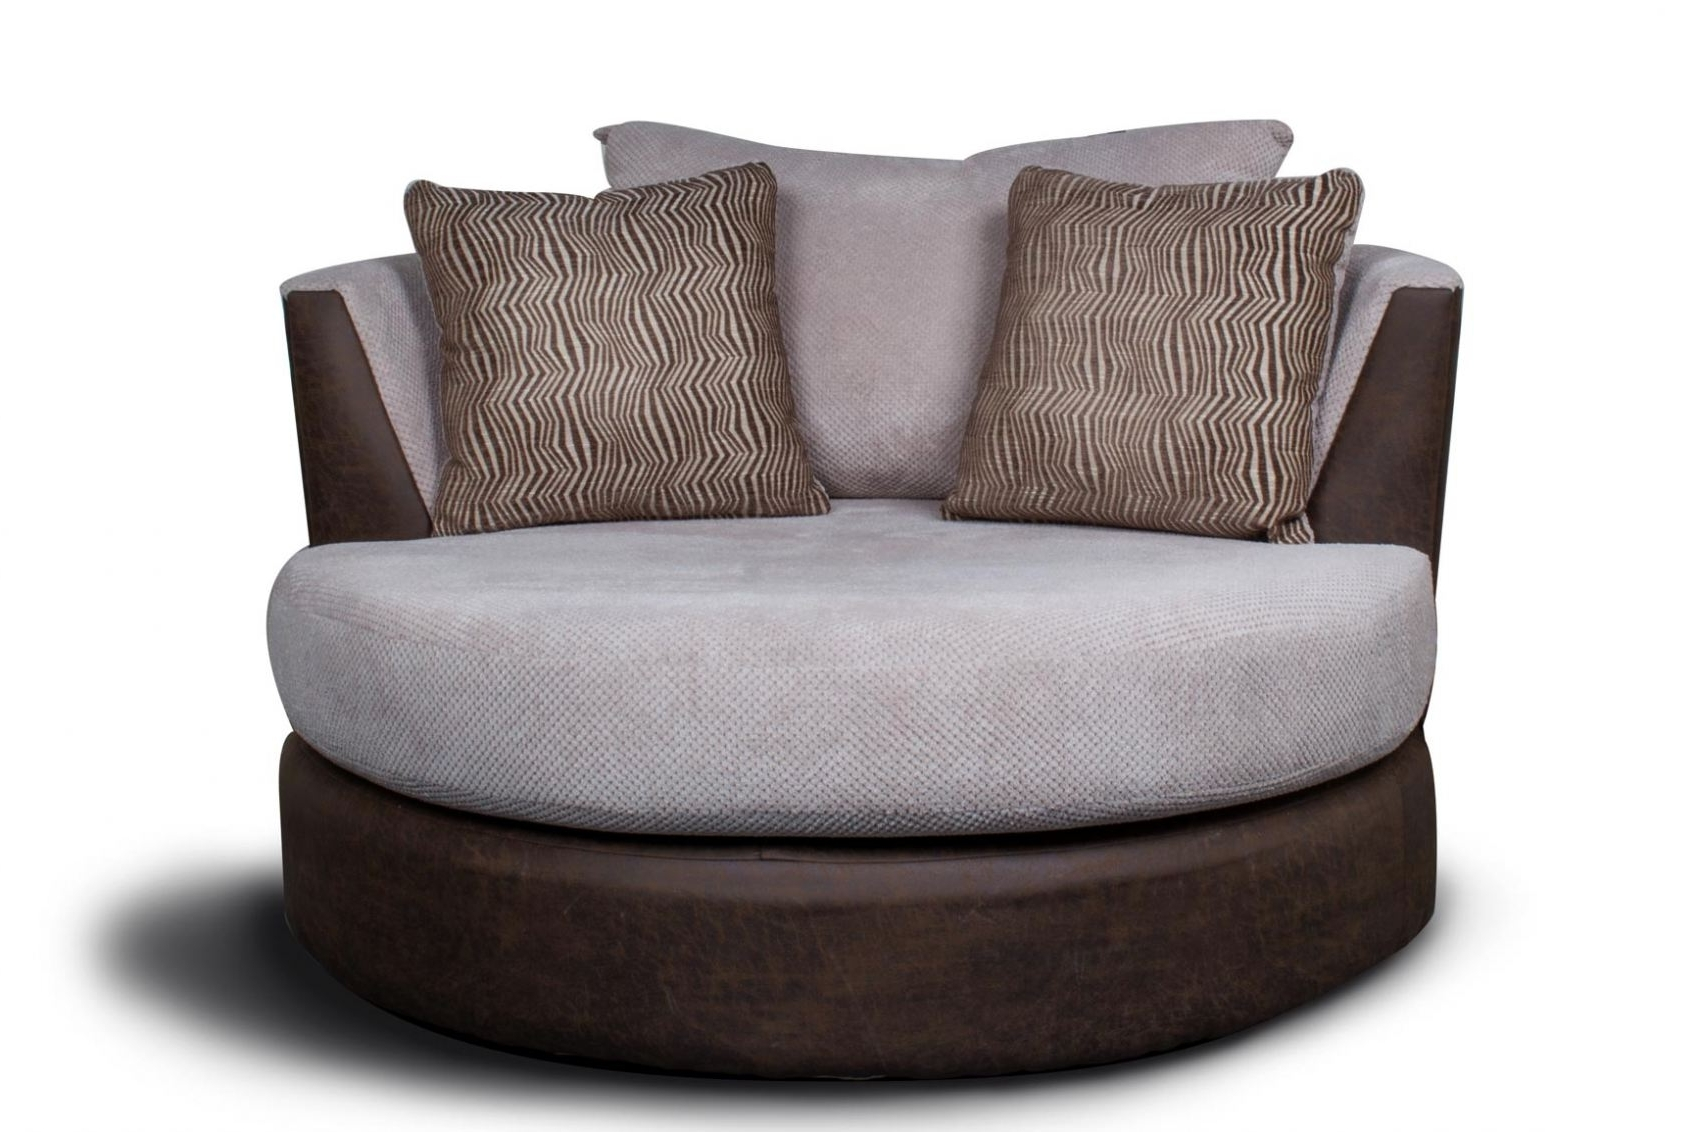 Round Swivel Sofa Chairs Regarding Newest Sofa : Dazzling Round Swivel Sofa Chair Circular Armchair Large (View 16 of 20)